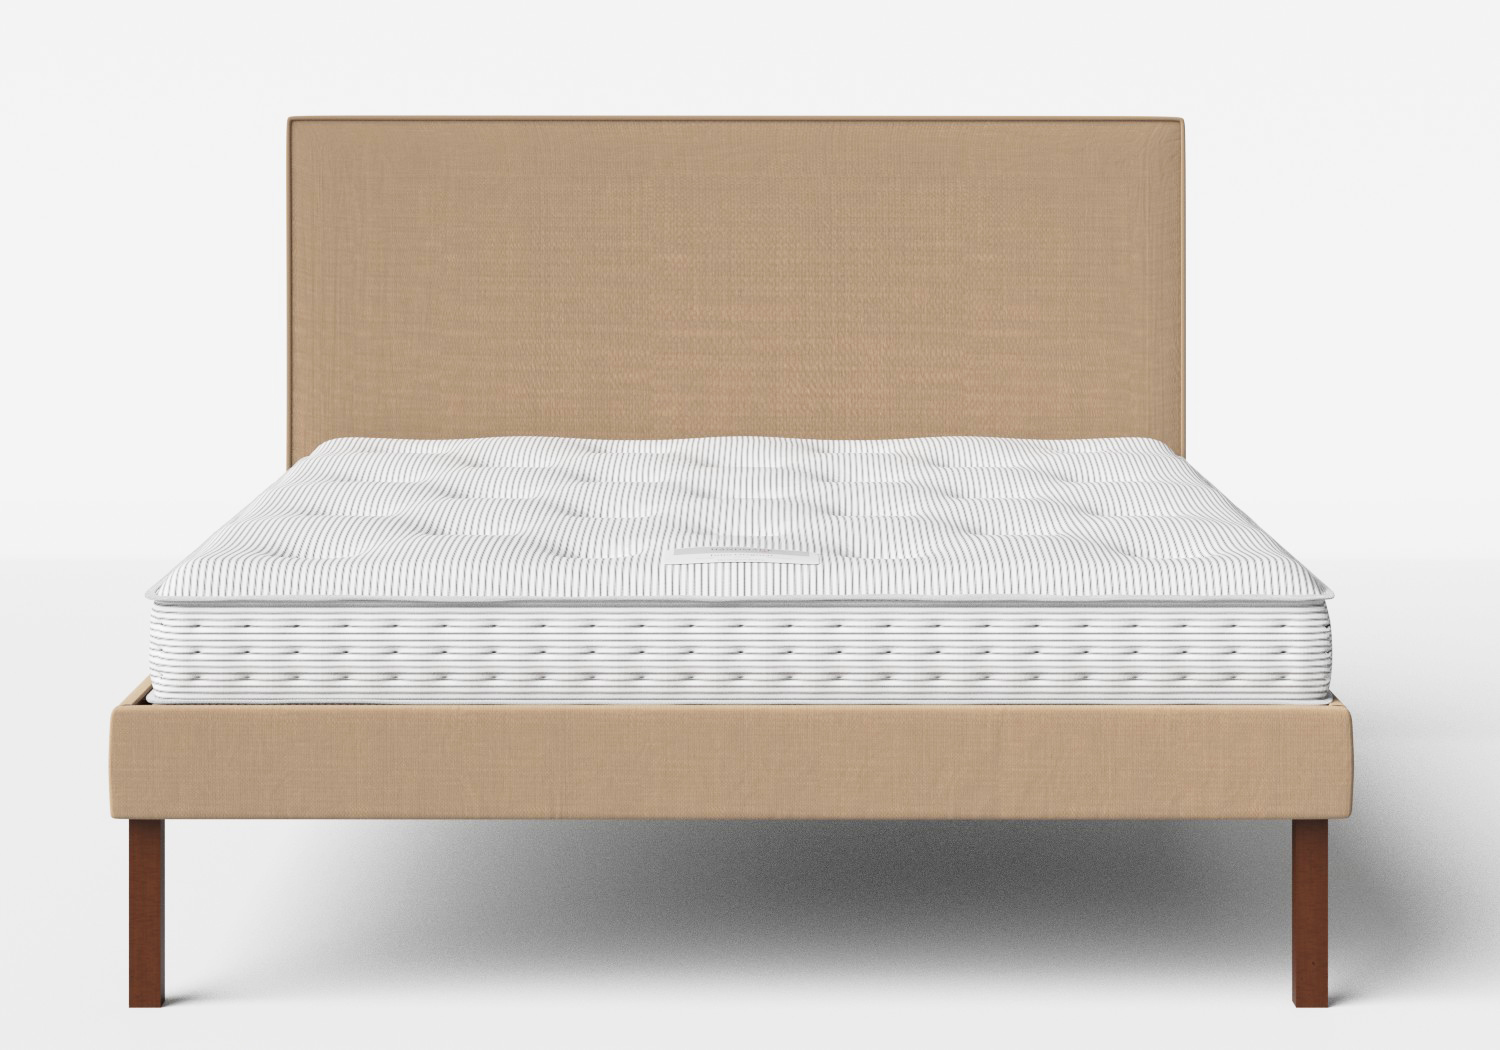 Misaki Upholstered Bed in Straw fabric with piping shown with Juno 1 mattress